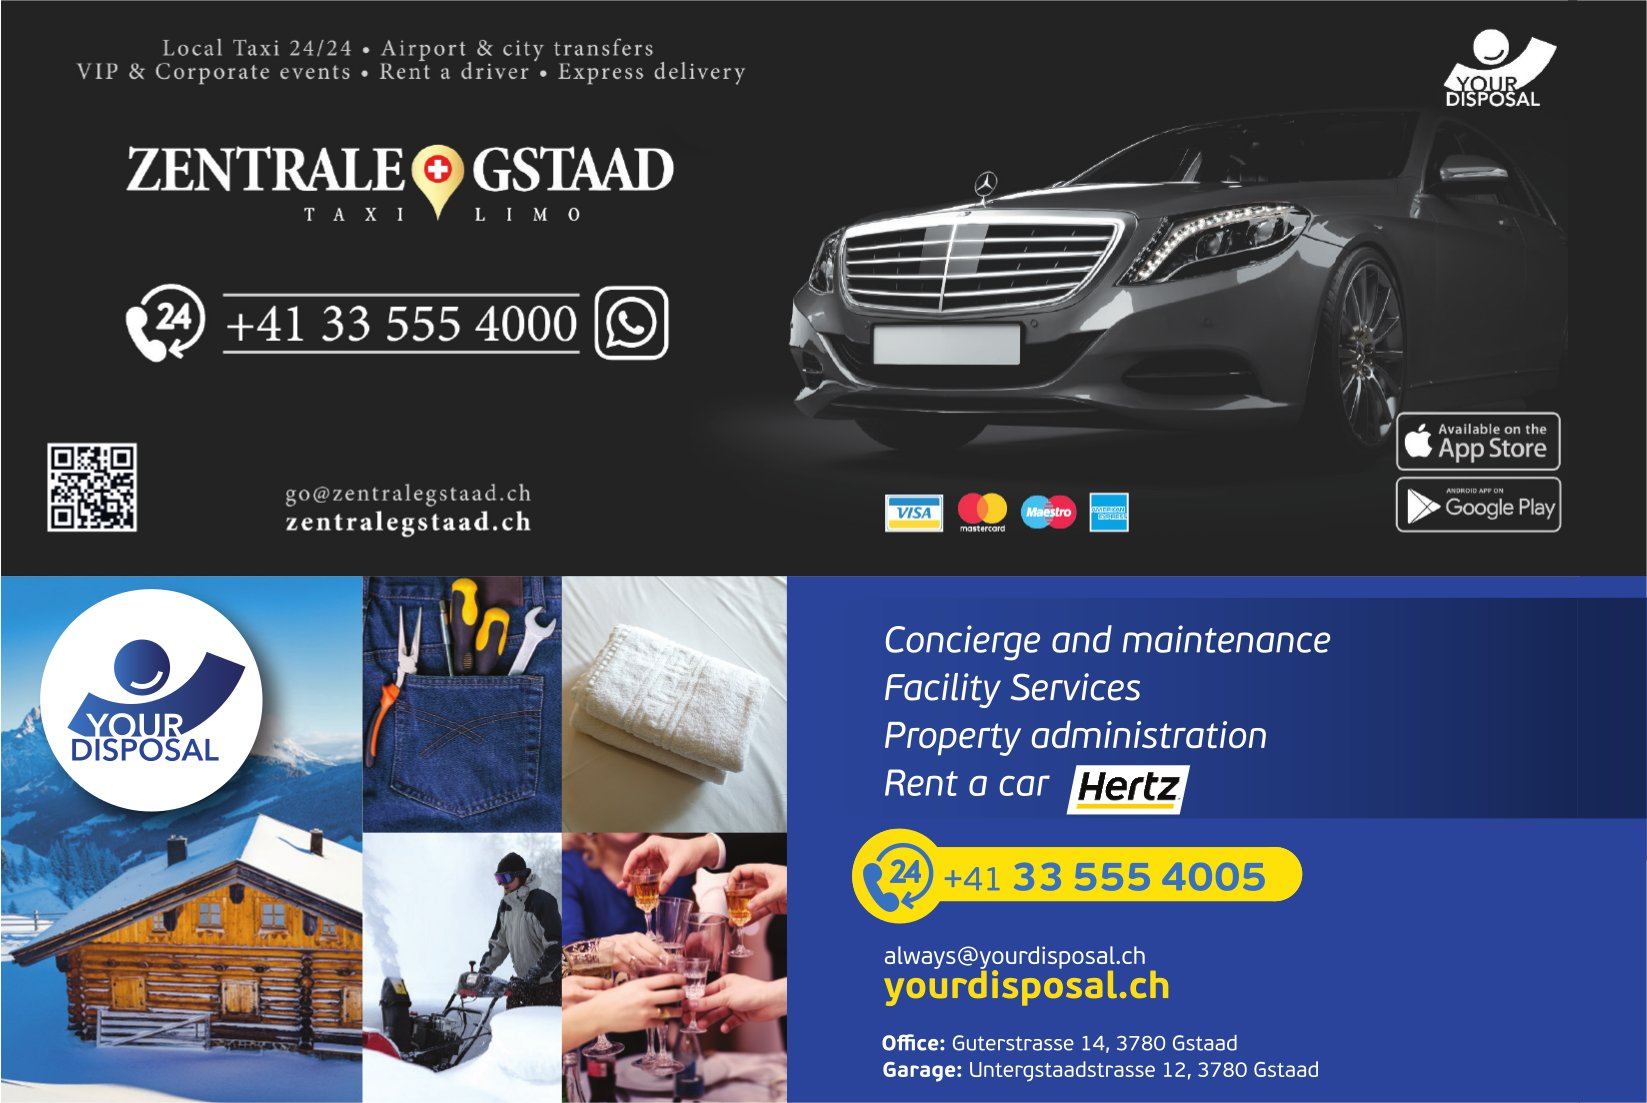 ZENTRALE GSTAAD,  TAXI & LIMO und YOUR DISPOSAL, GSTAAD